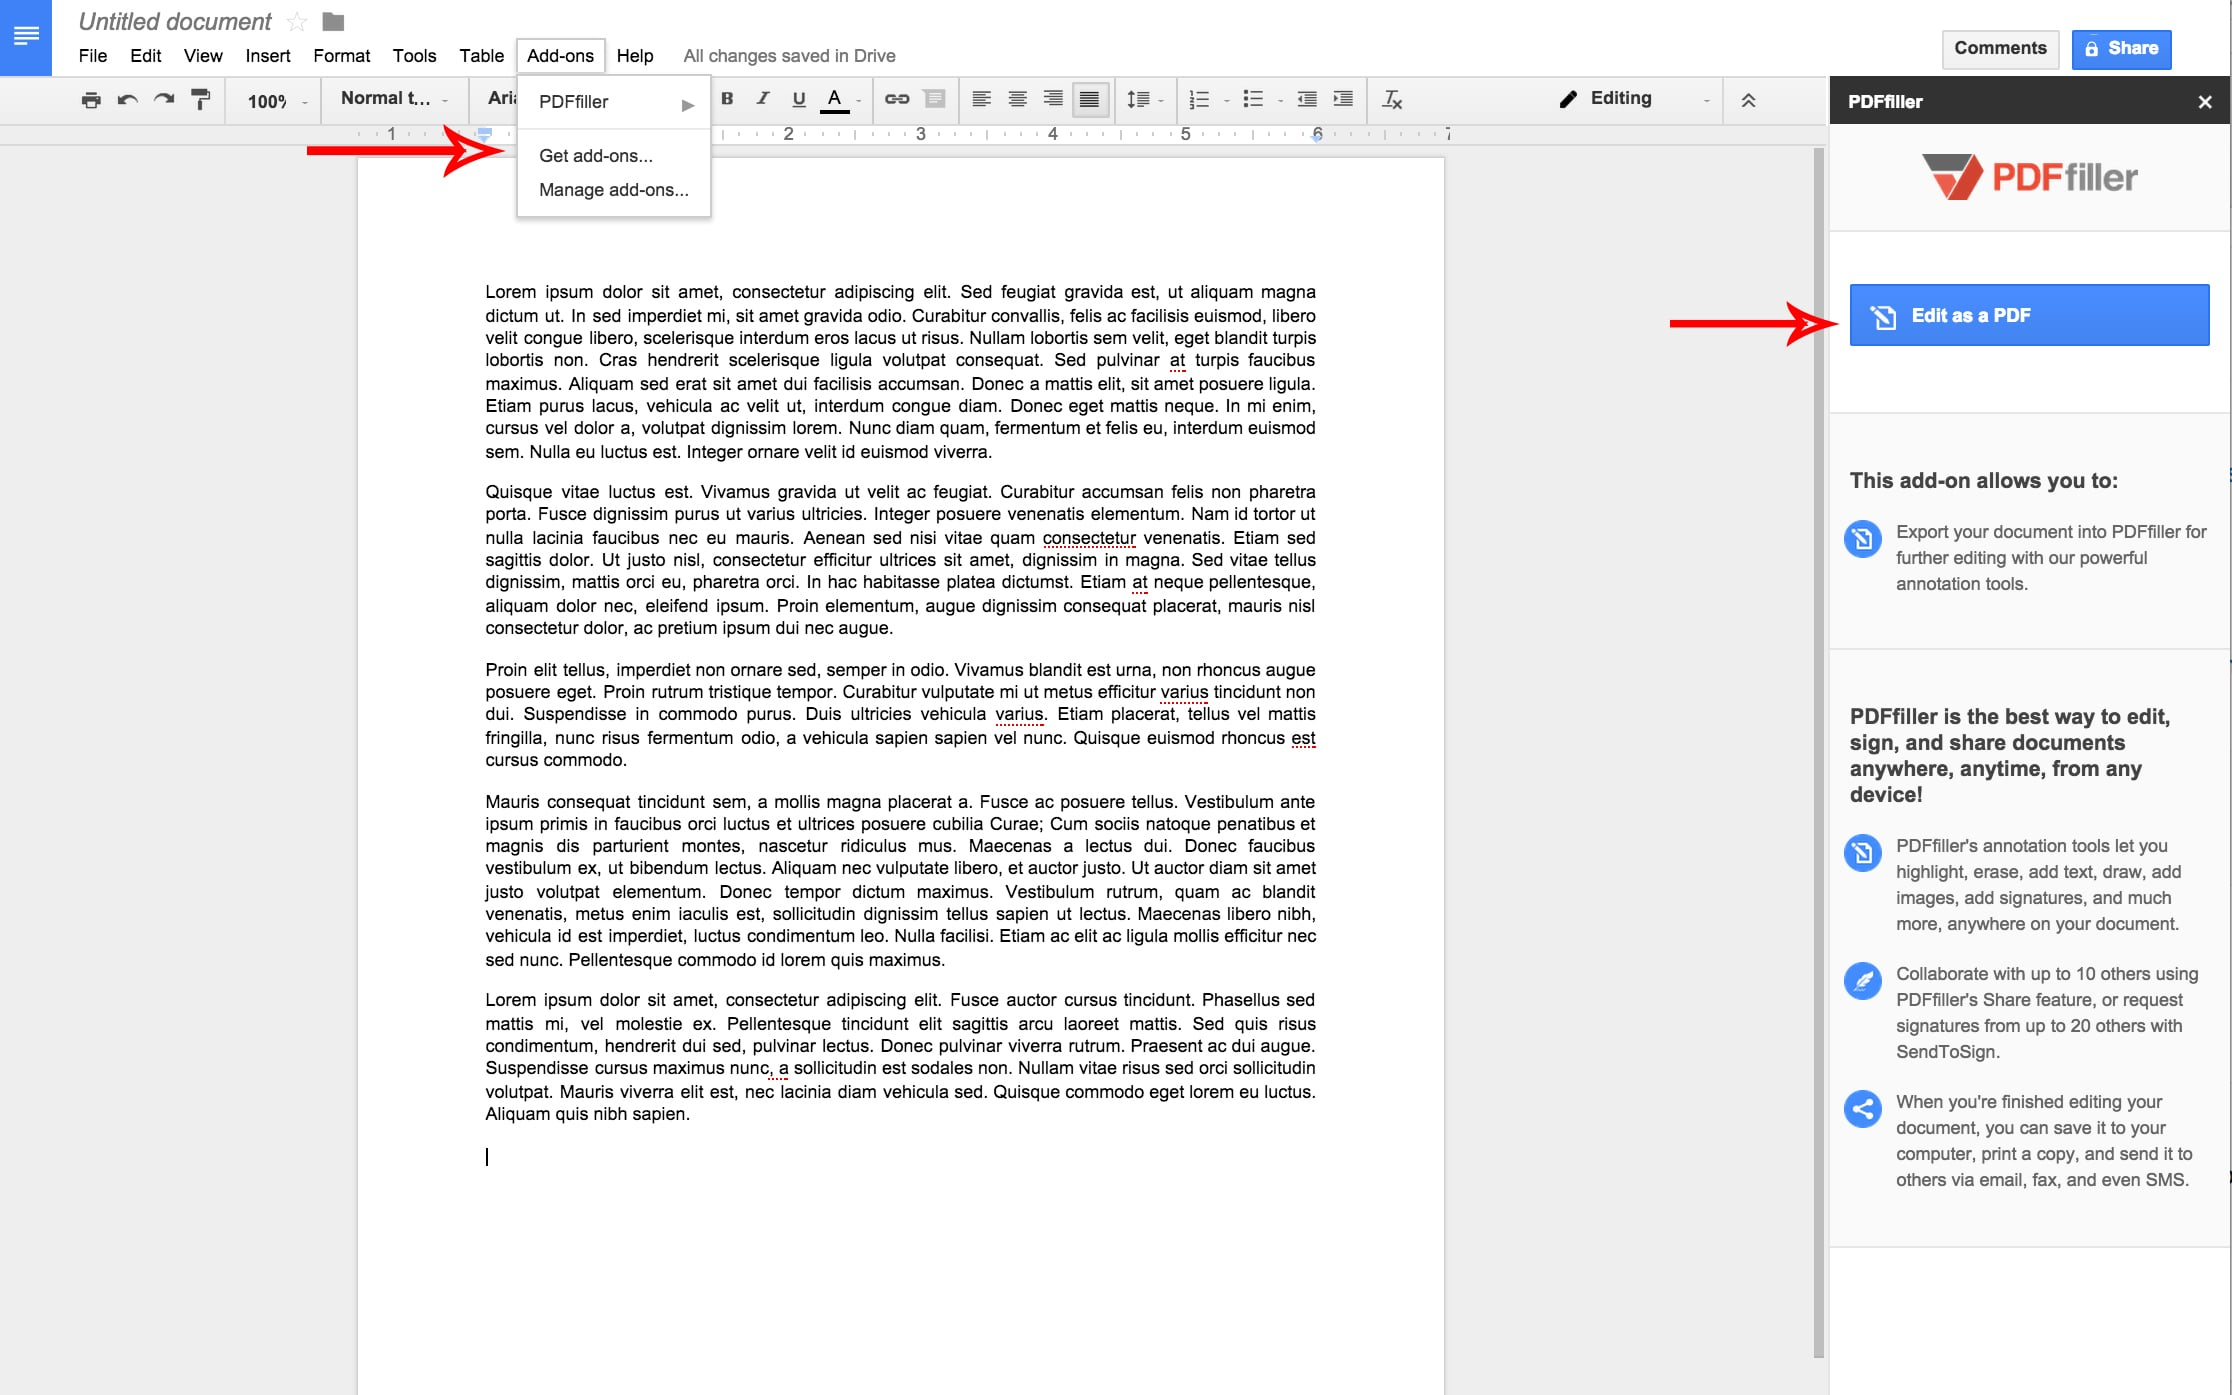 PDFfiller Google Docs Add-on: Expanding the Possibilities